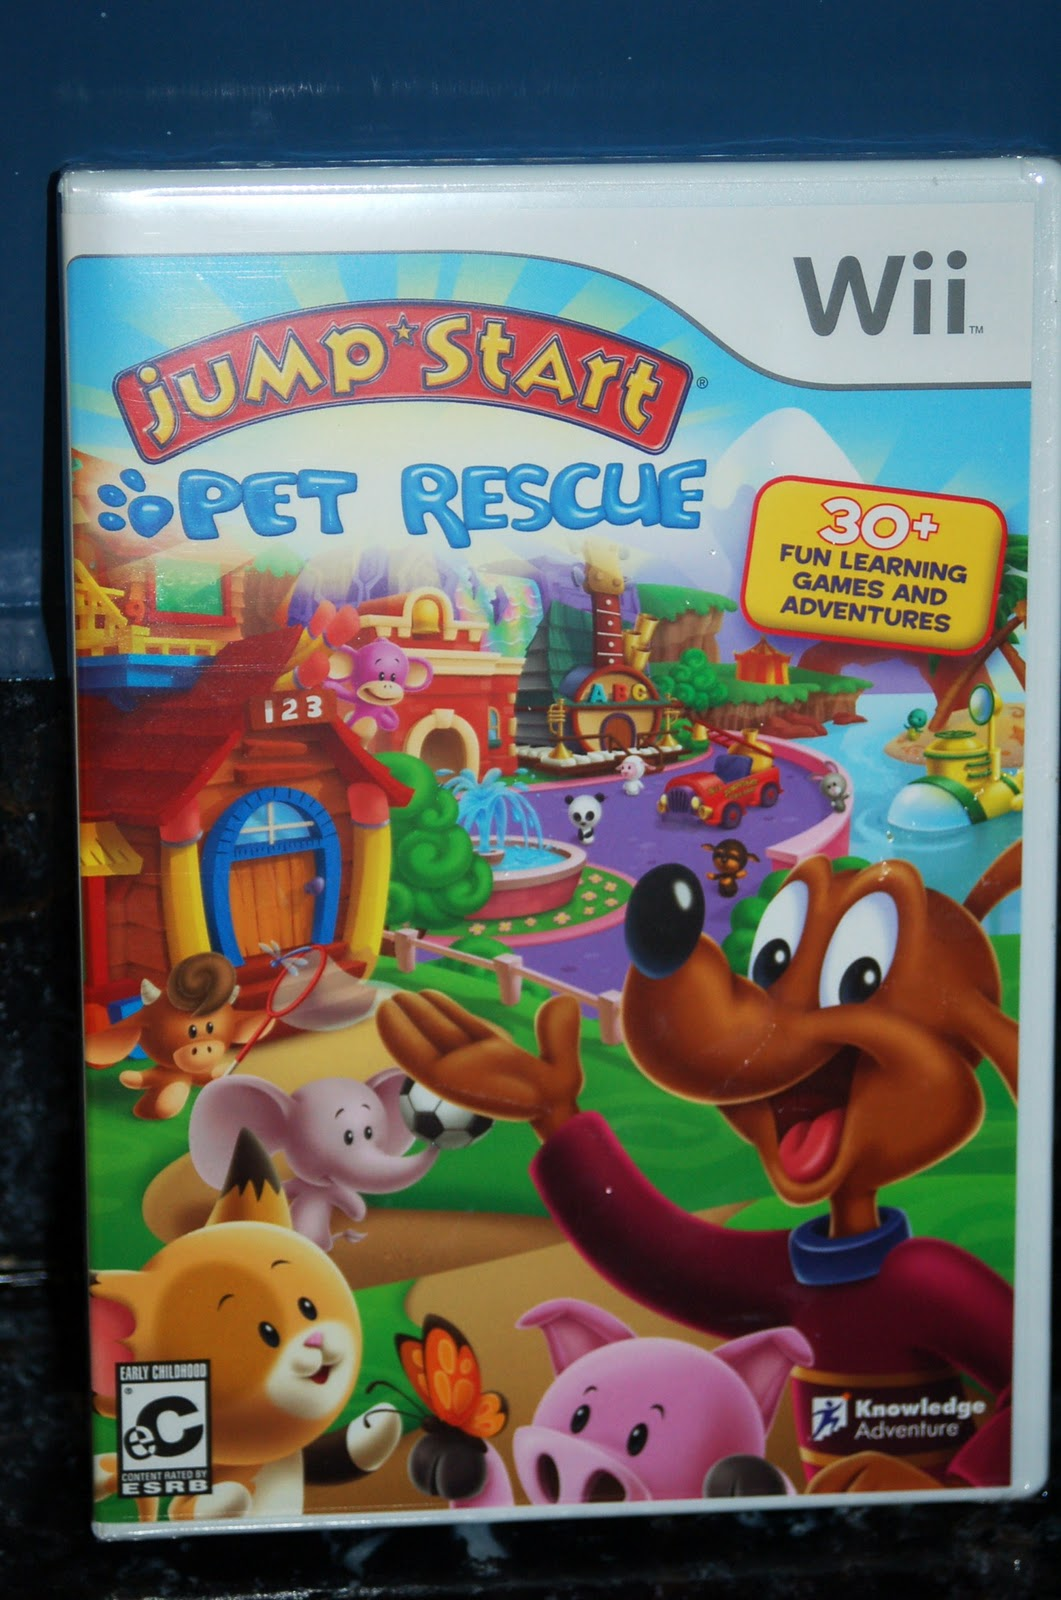 Jumpstart Pet Rescue Wii Game Review